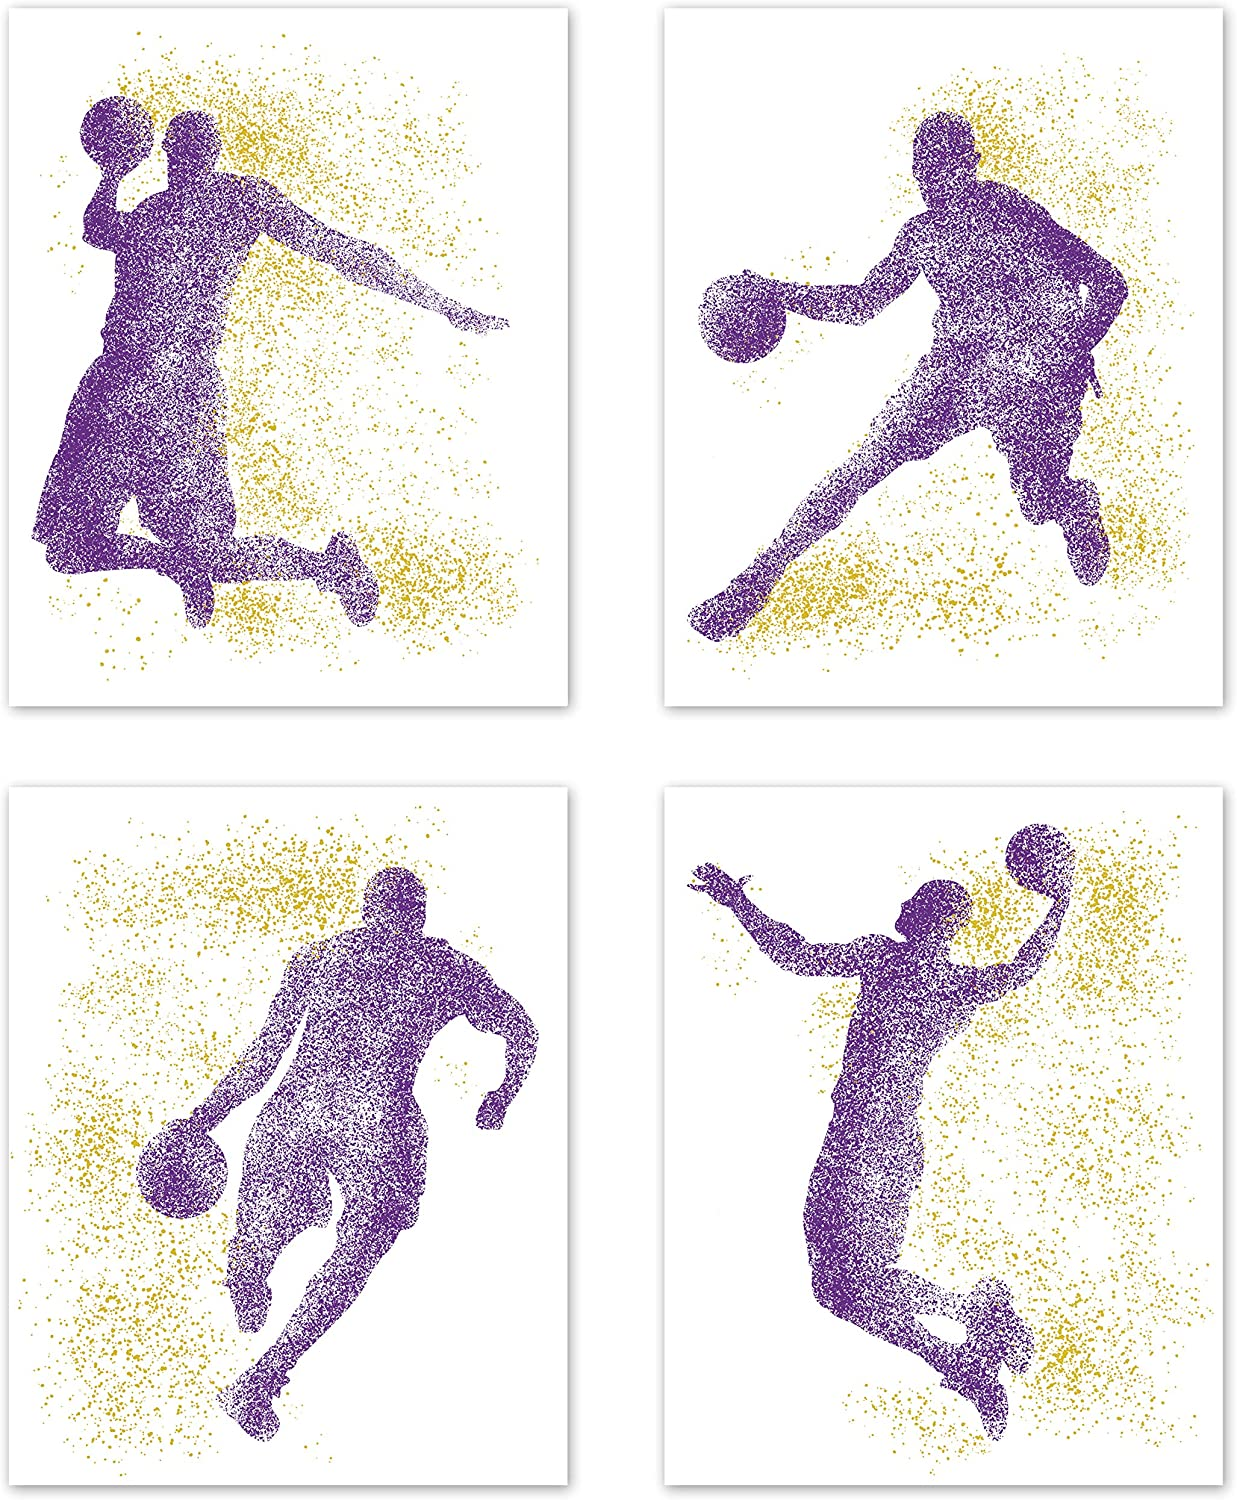 Sports Basketball NBA Wall Art Posters Home Room Decor L.A. Los Angeles Lakers Kobe Bryant Man Cave Silhouette Pictures Prints Decorations for Boys Kids Men Teen College Dorm Bedroom Set of 4-8 x 10